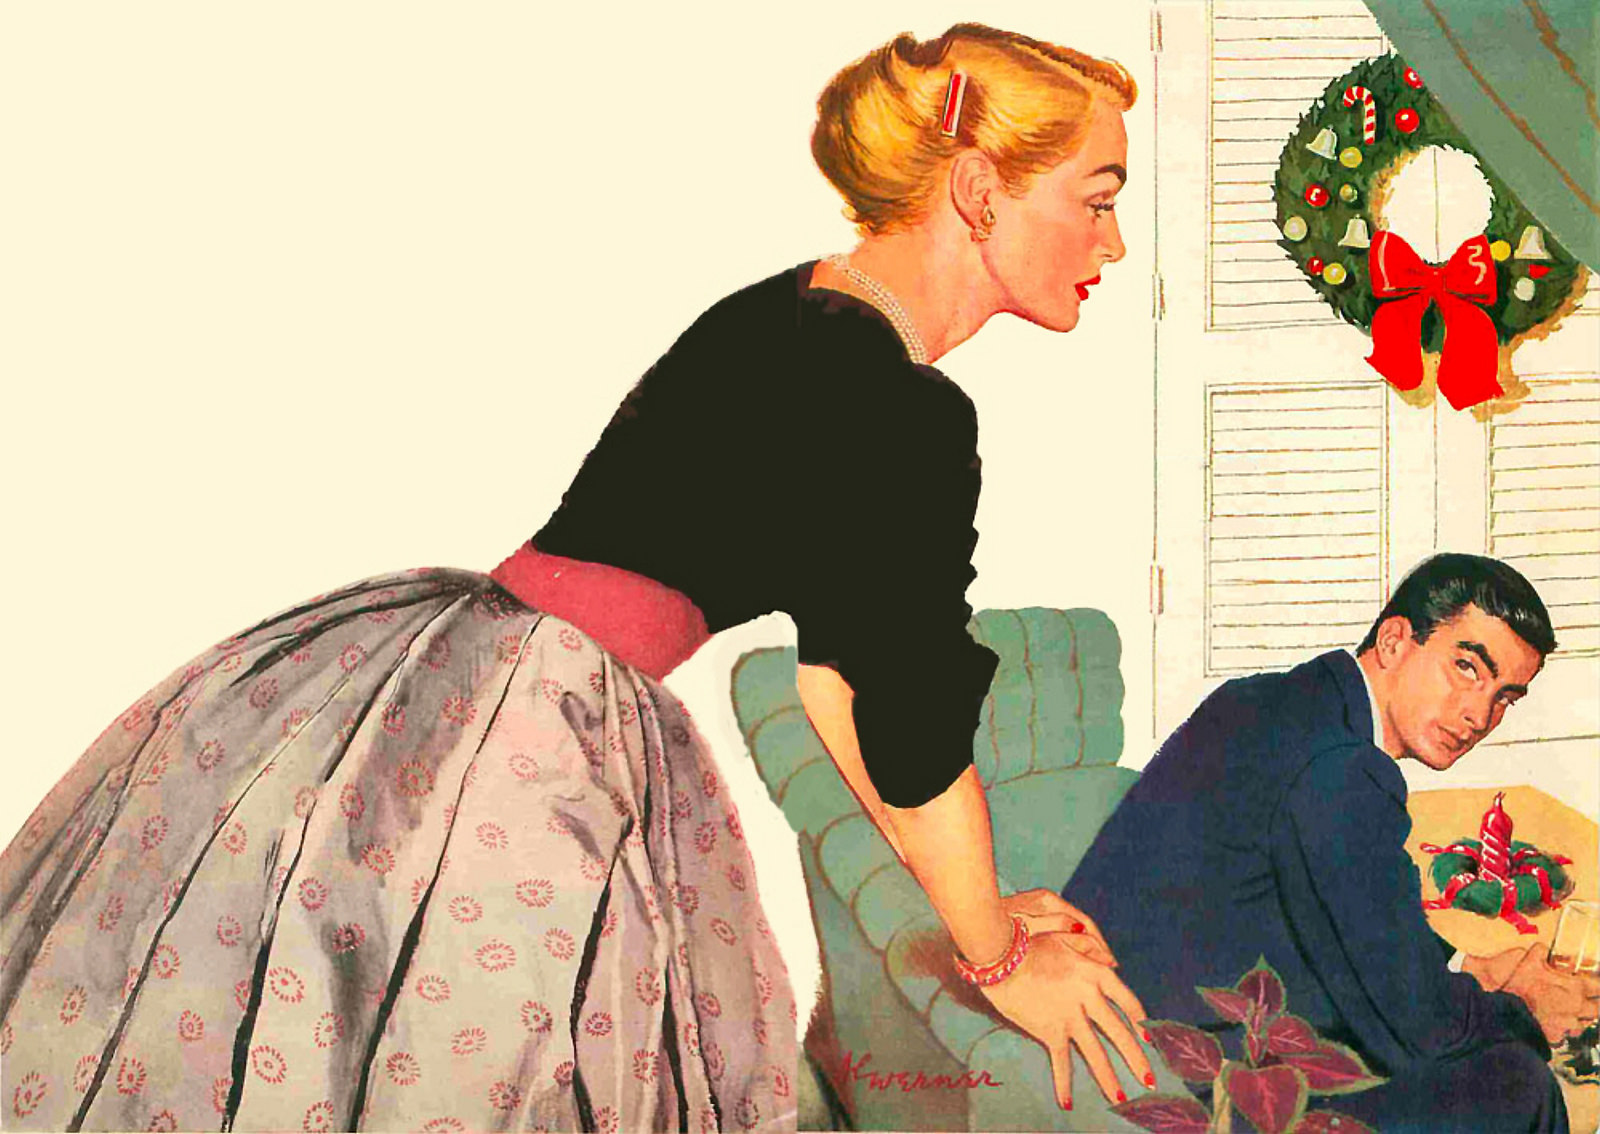 The Prodigal in Today's Woman magazine in December 1952 by Al Werner